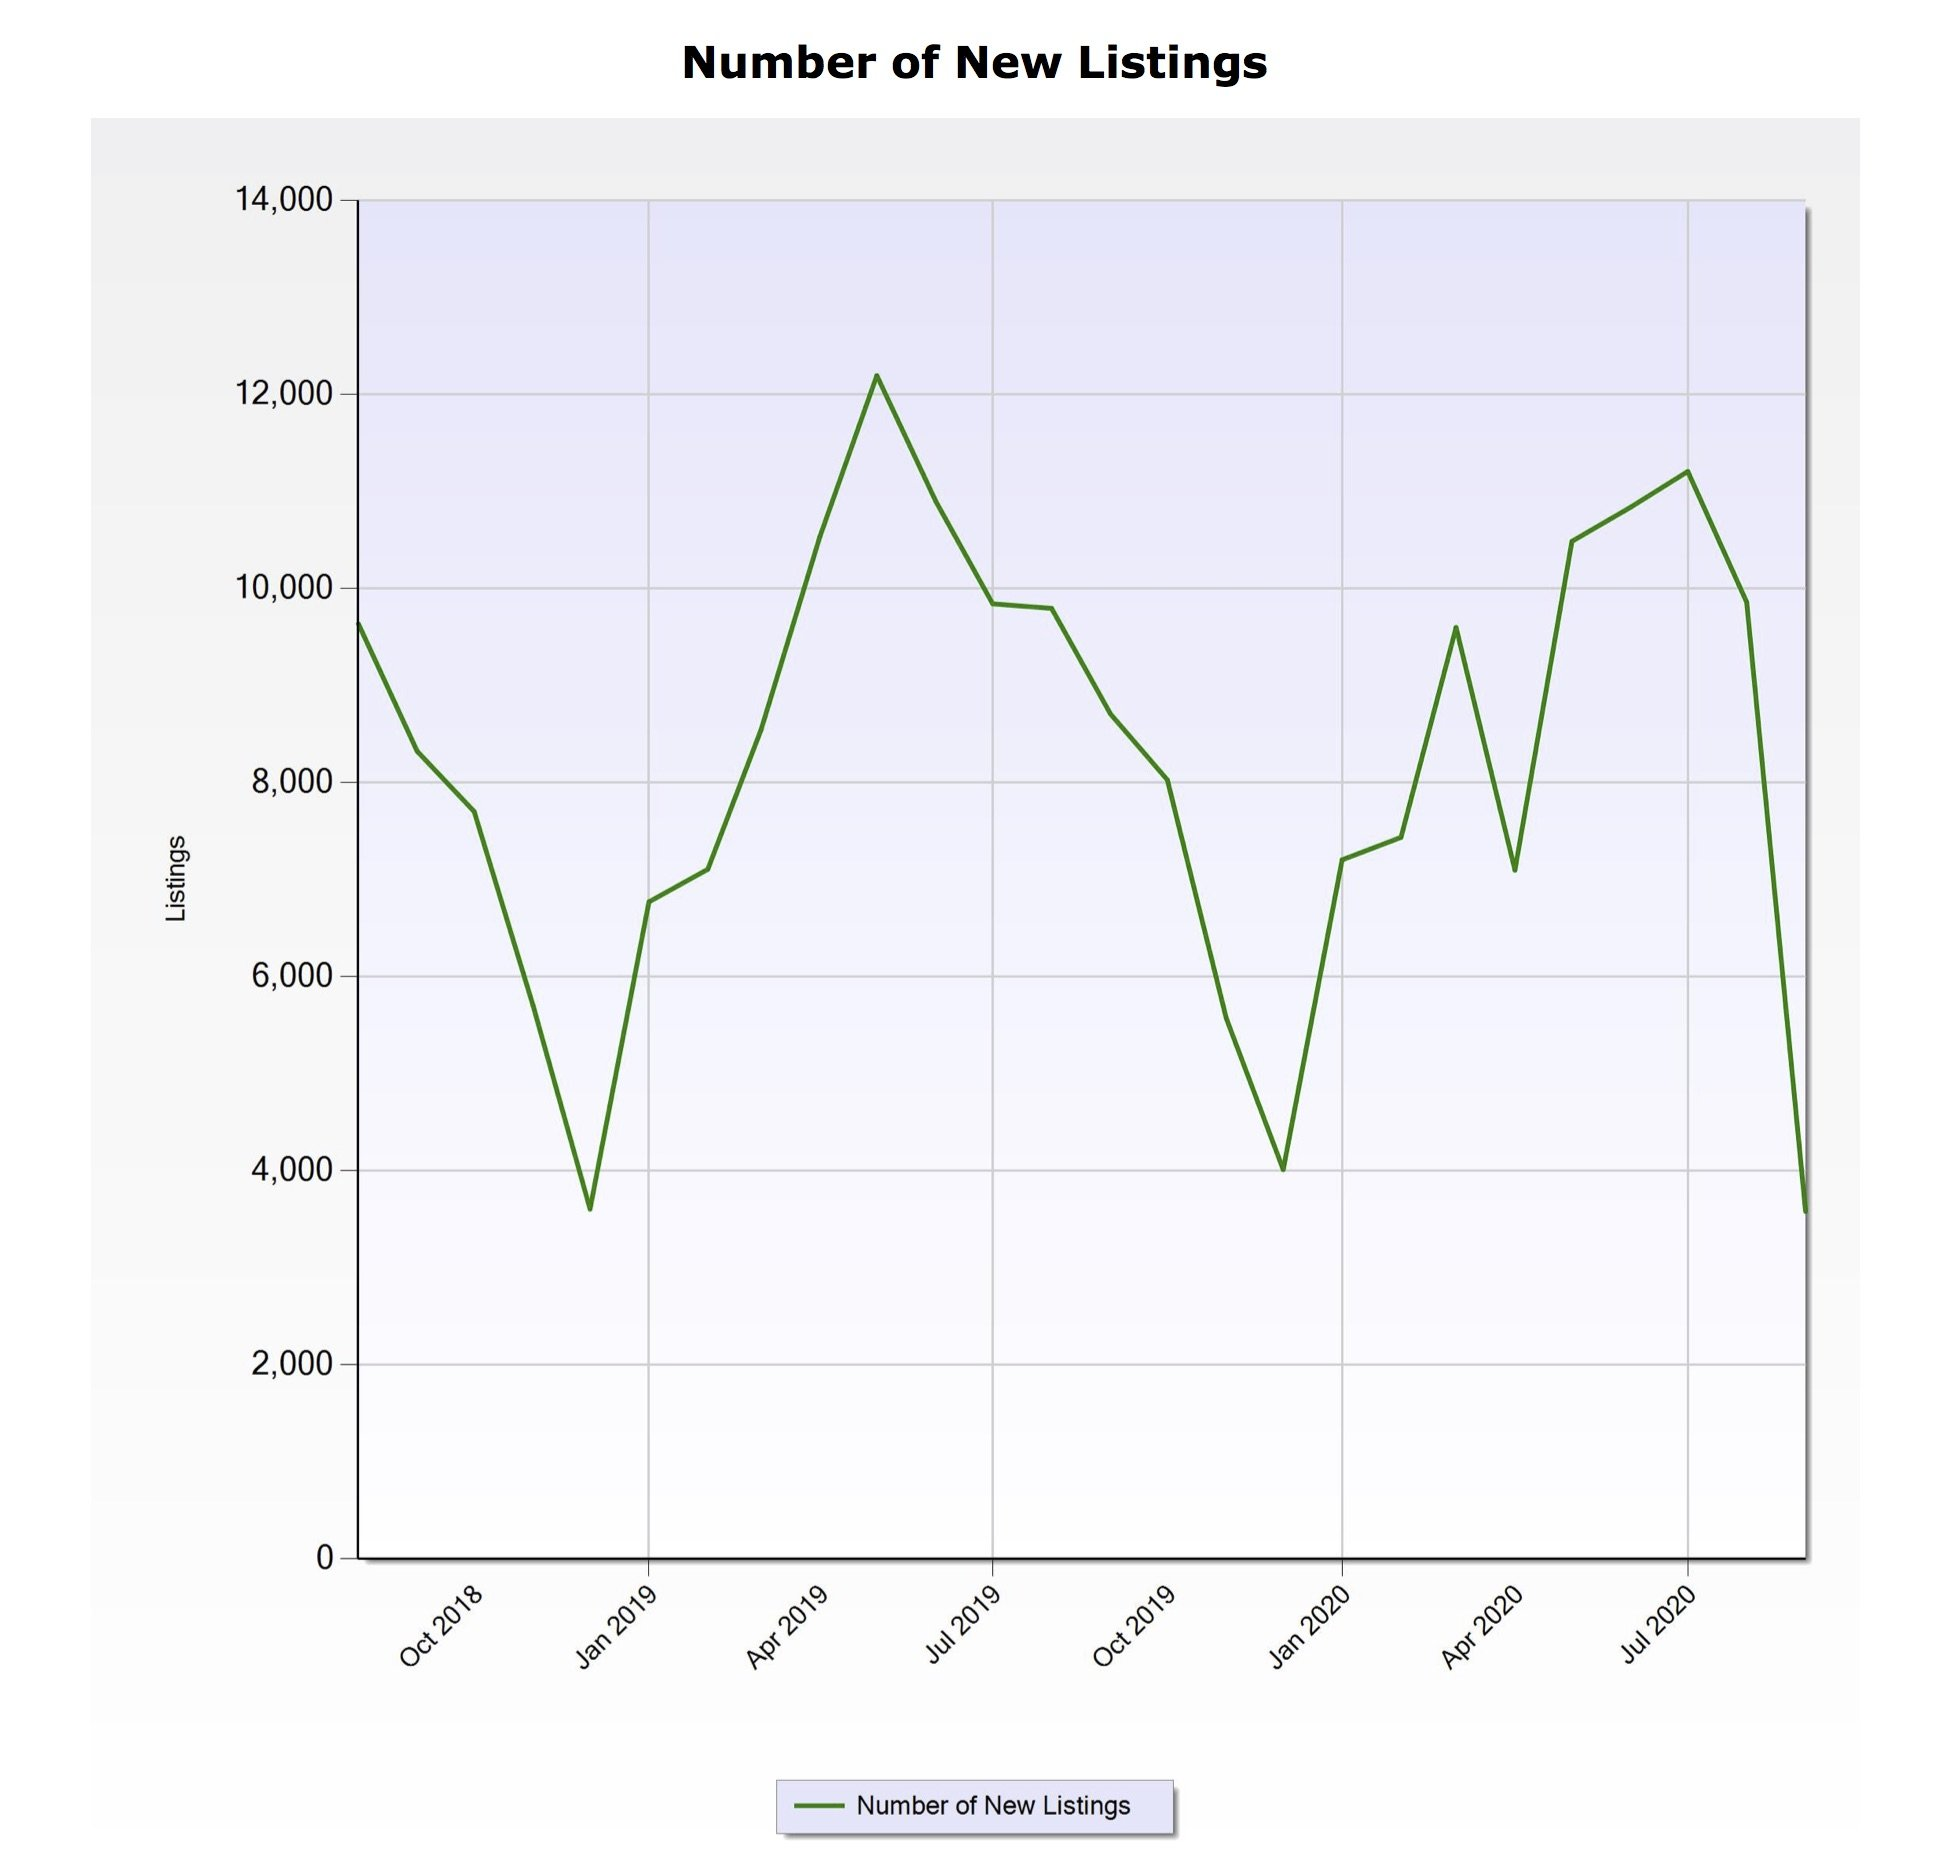 The number of listings in the Denver market have hit an all-time low of 3,578.